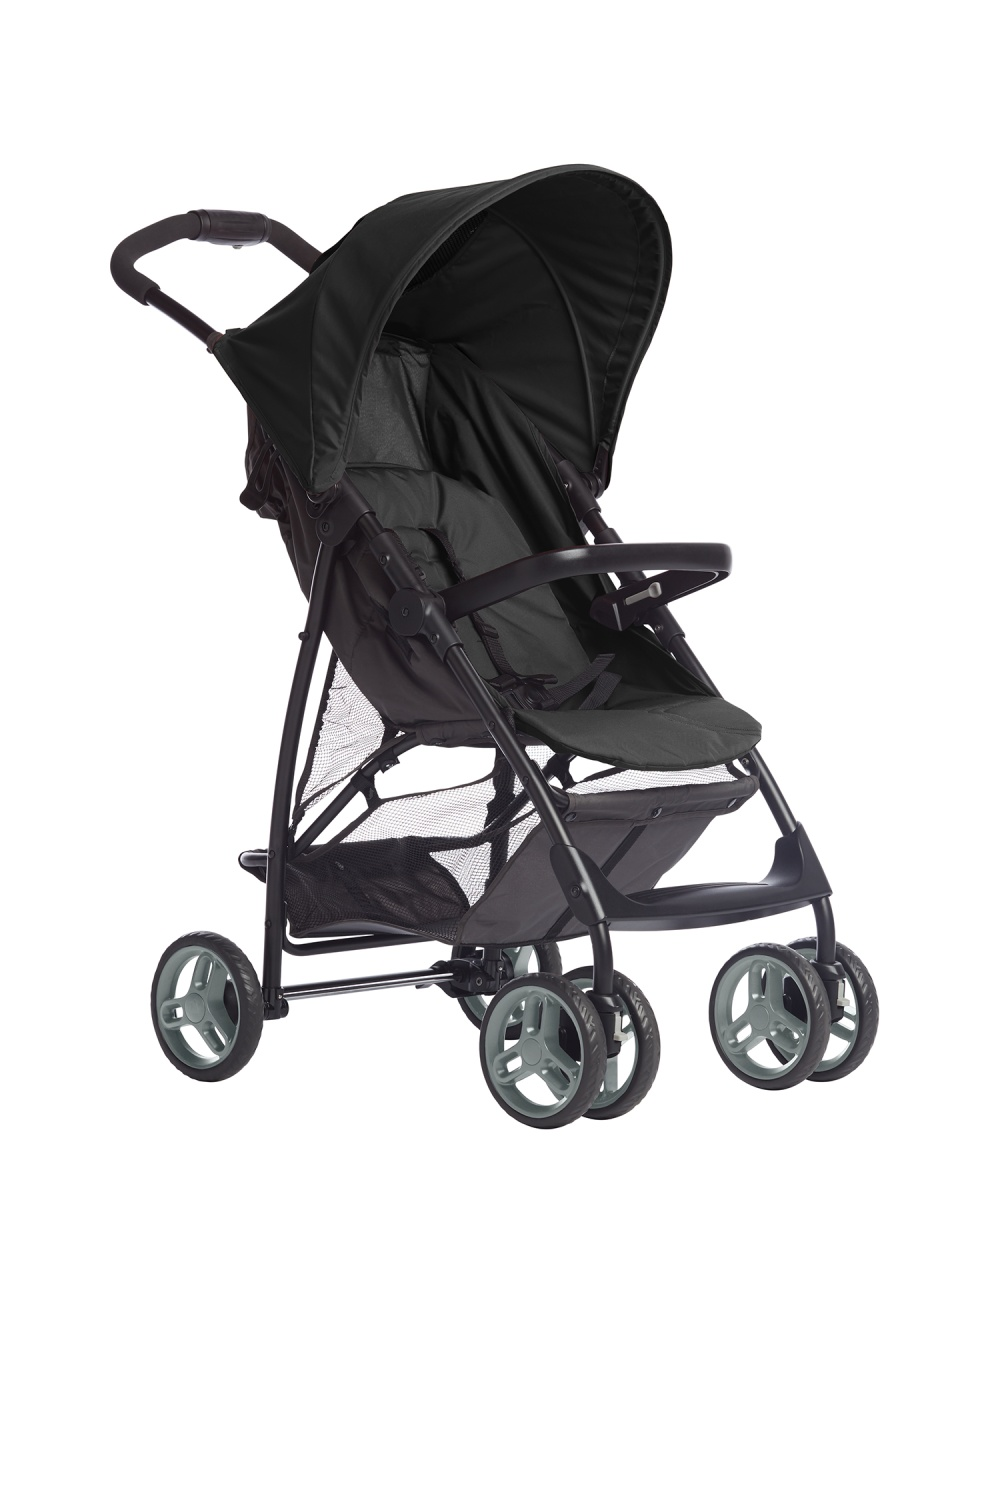 Image result for Graco literider DLX black